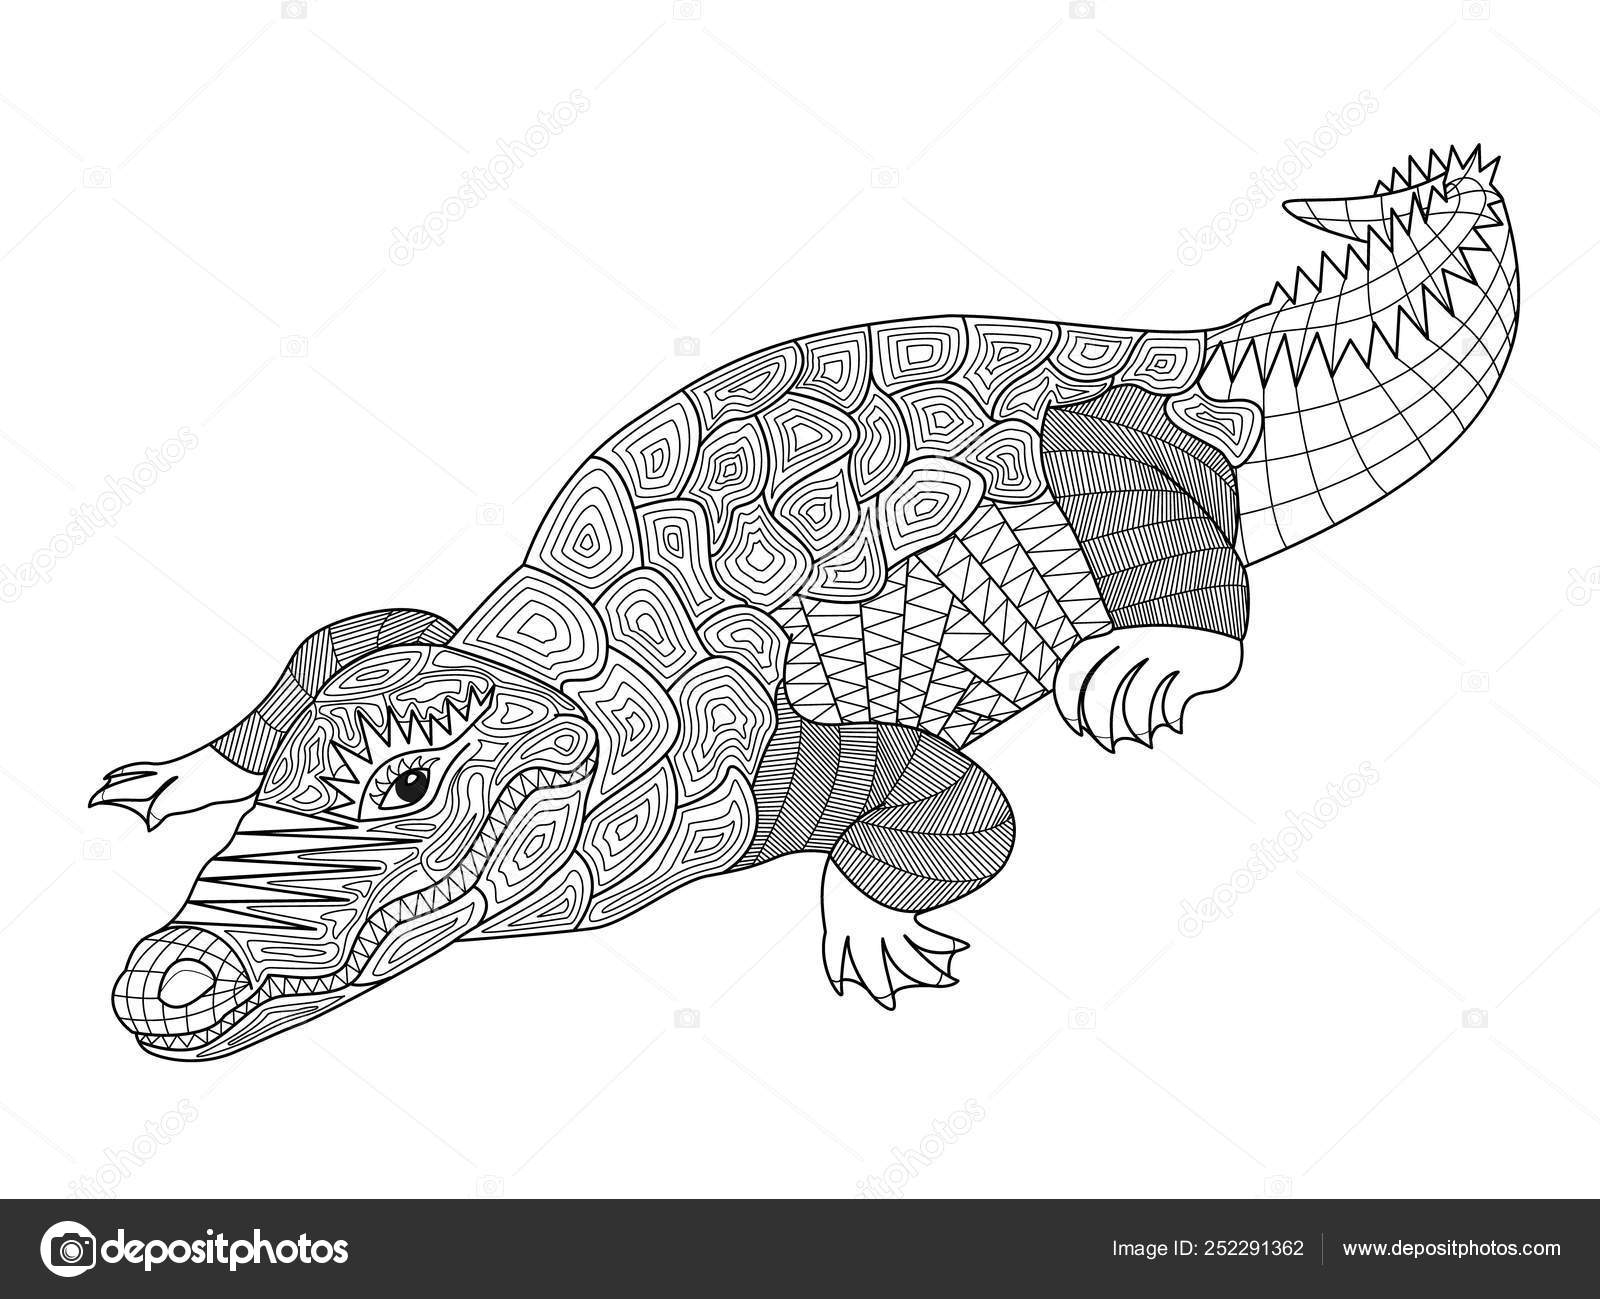 Zentangle crocodile coloring pages for adults and children ...